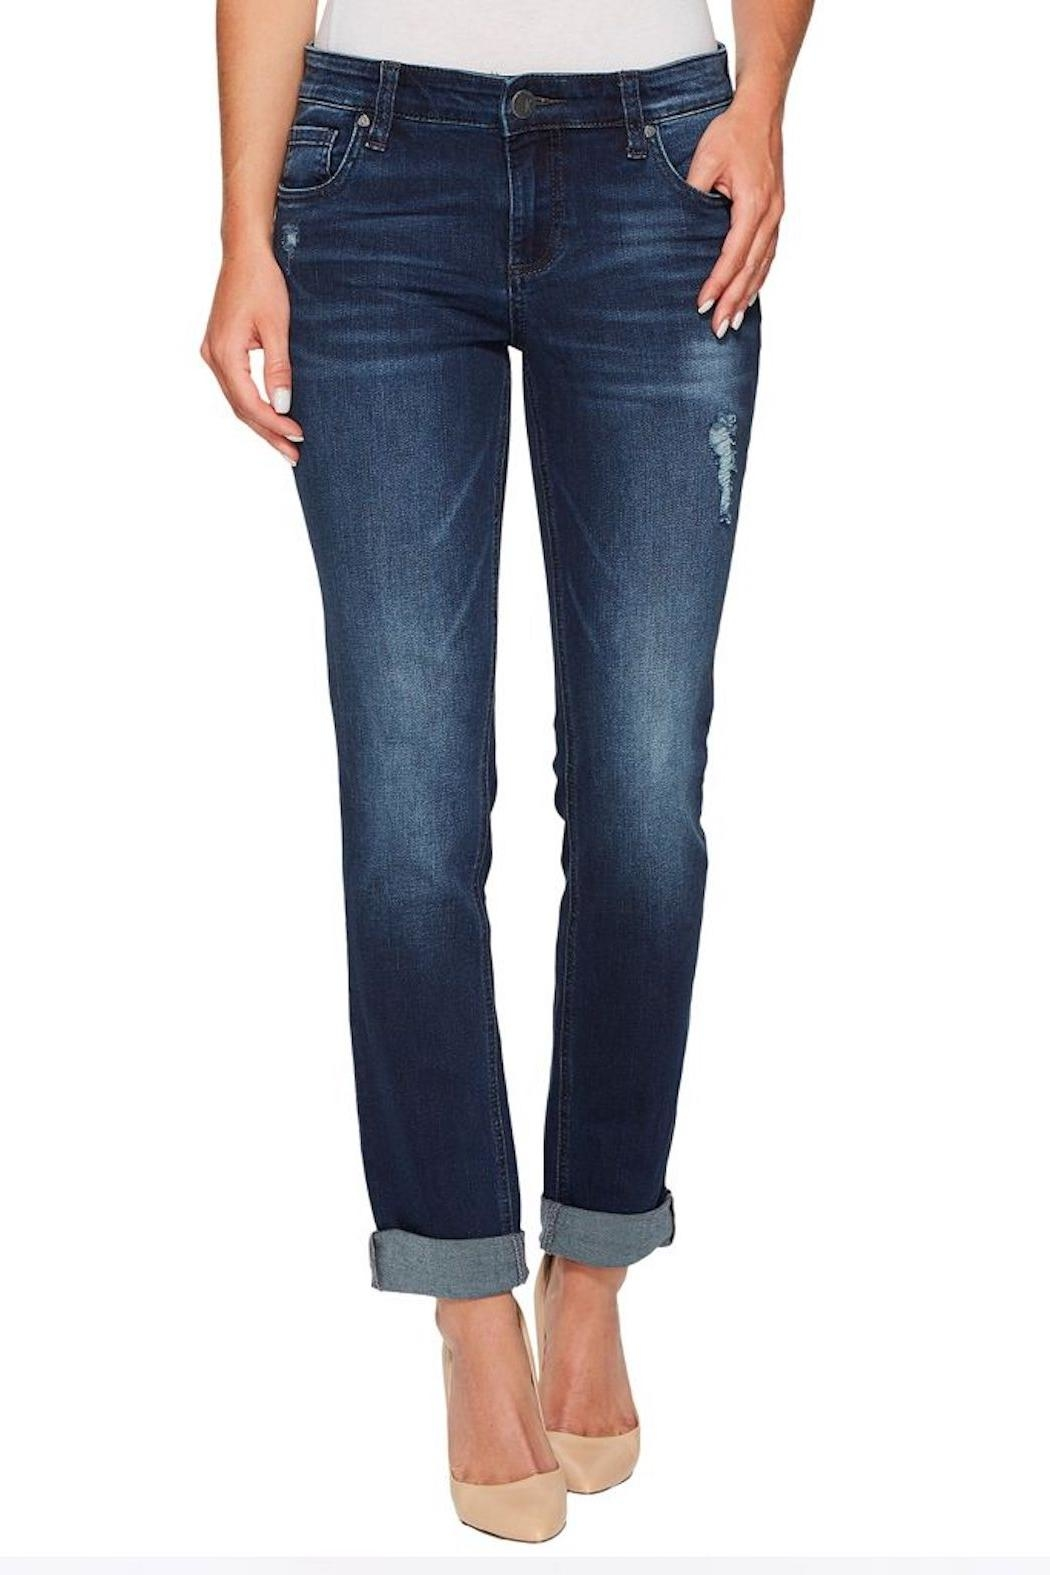 Kut from the Kloth Slouchy Boyfriend Jeans - Main Image